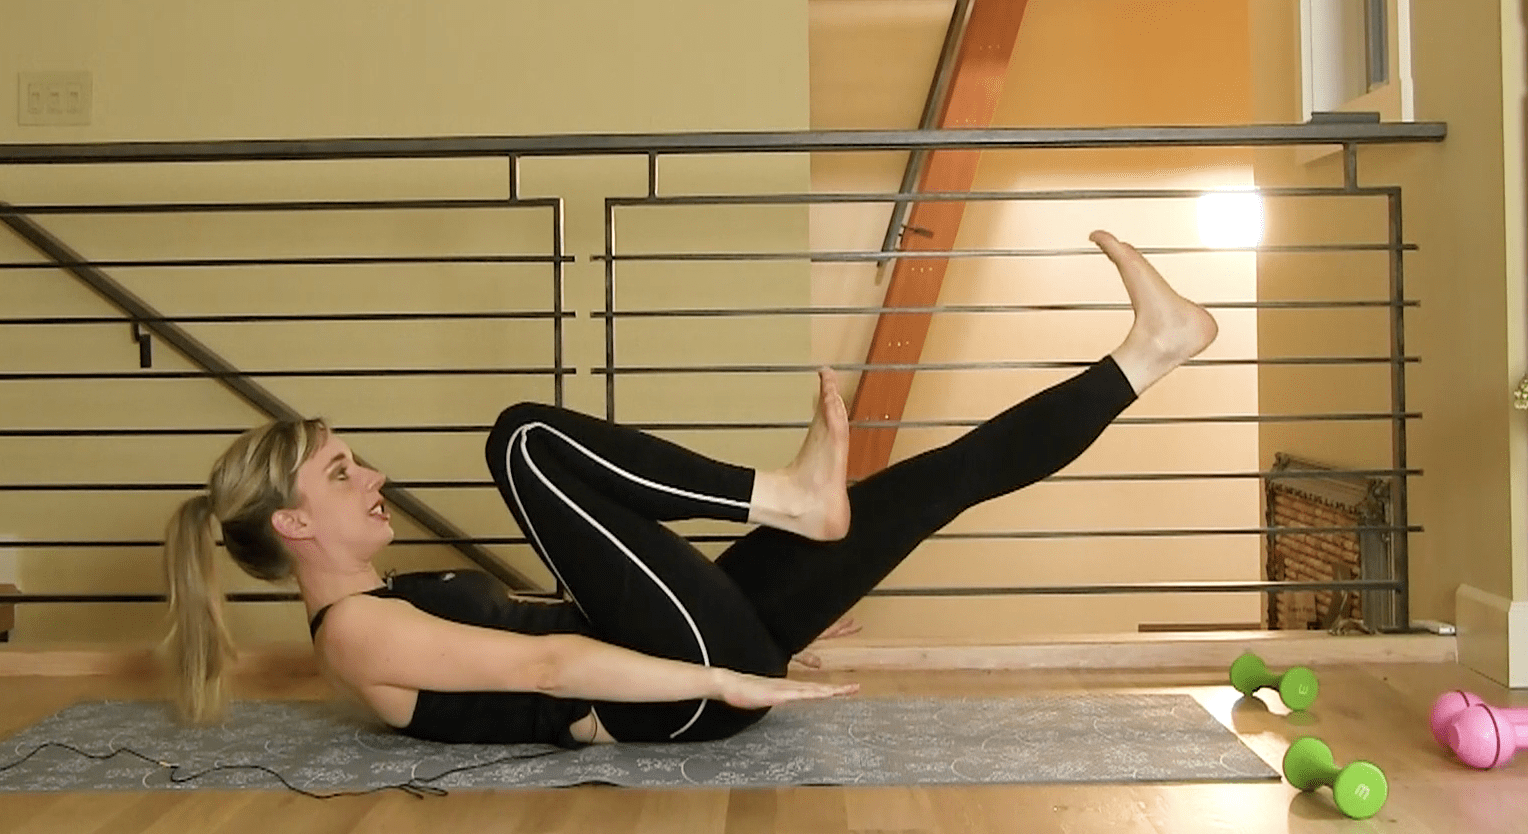 Fittbe Pilates Session of the Day 20 Minute Tone UP